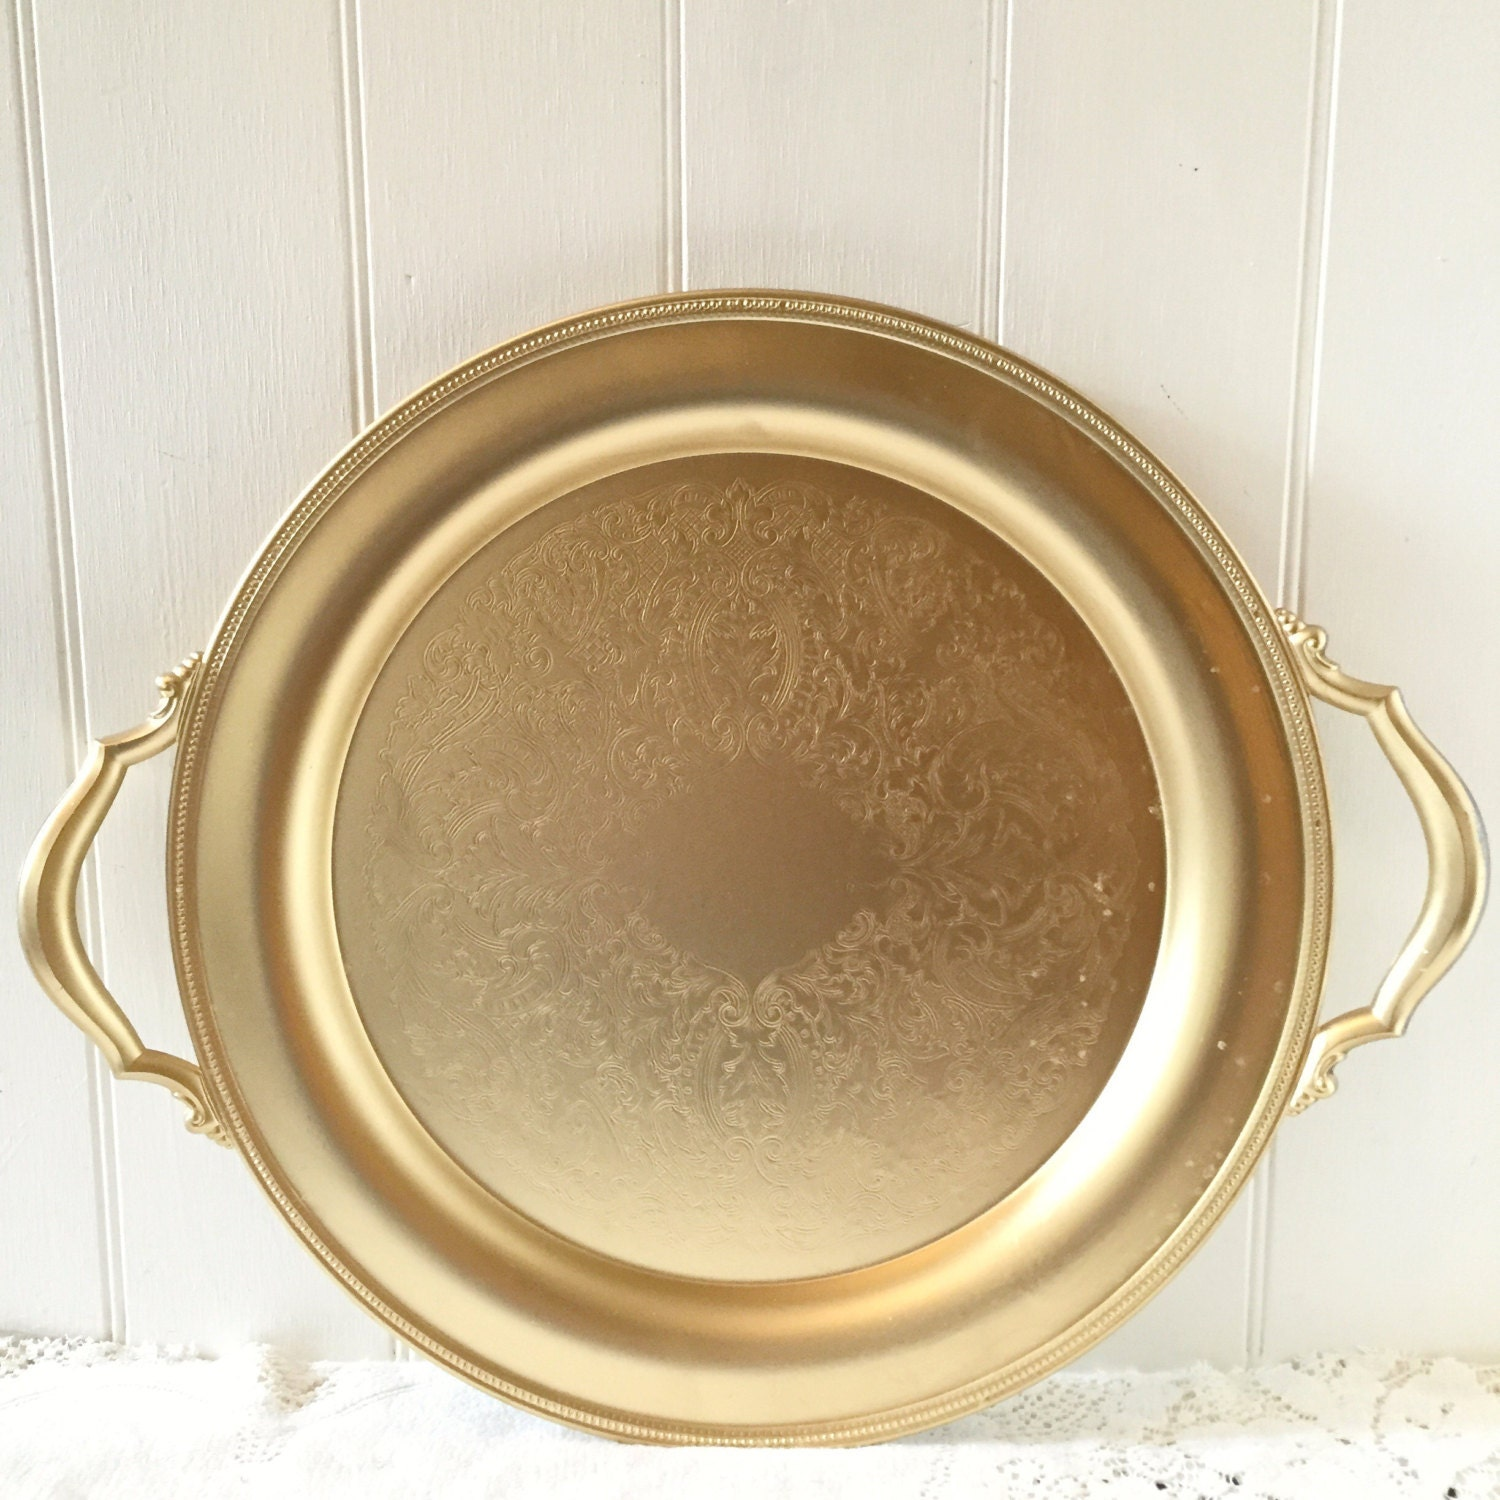 Gold serving tray wedding cake plate table centerpiece dessert